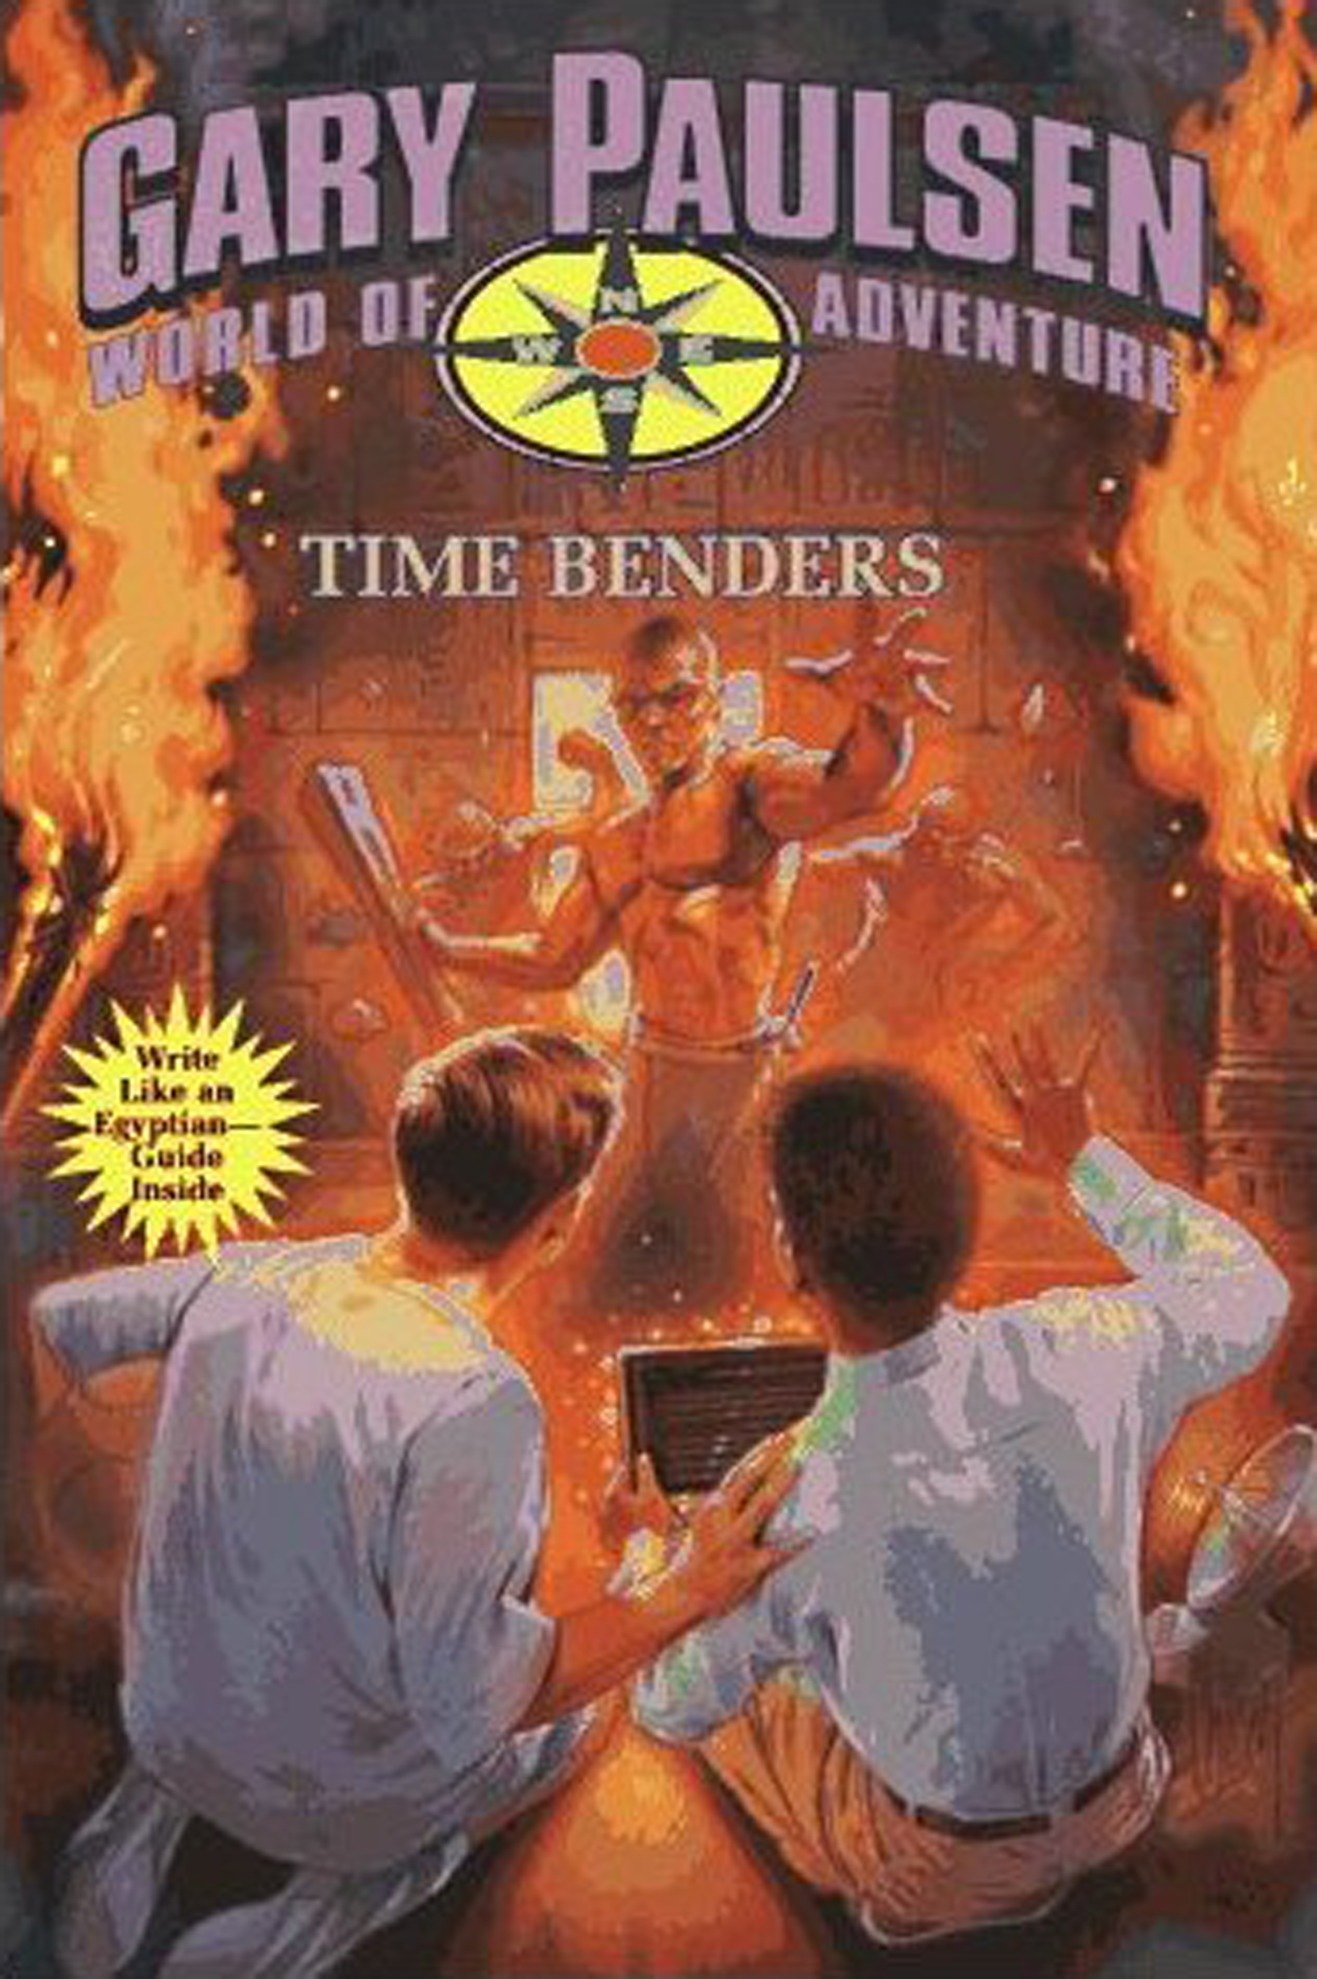 Time benders World of Adventure Series, Book 14 cover image